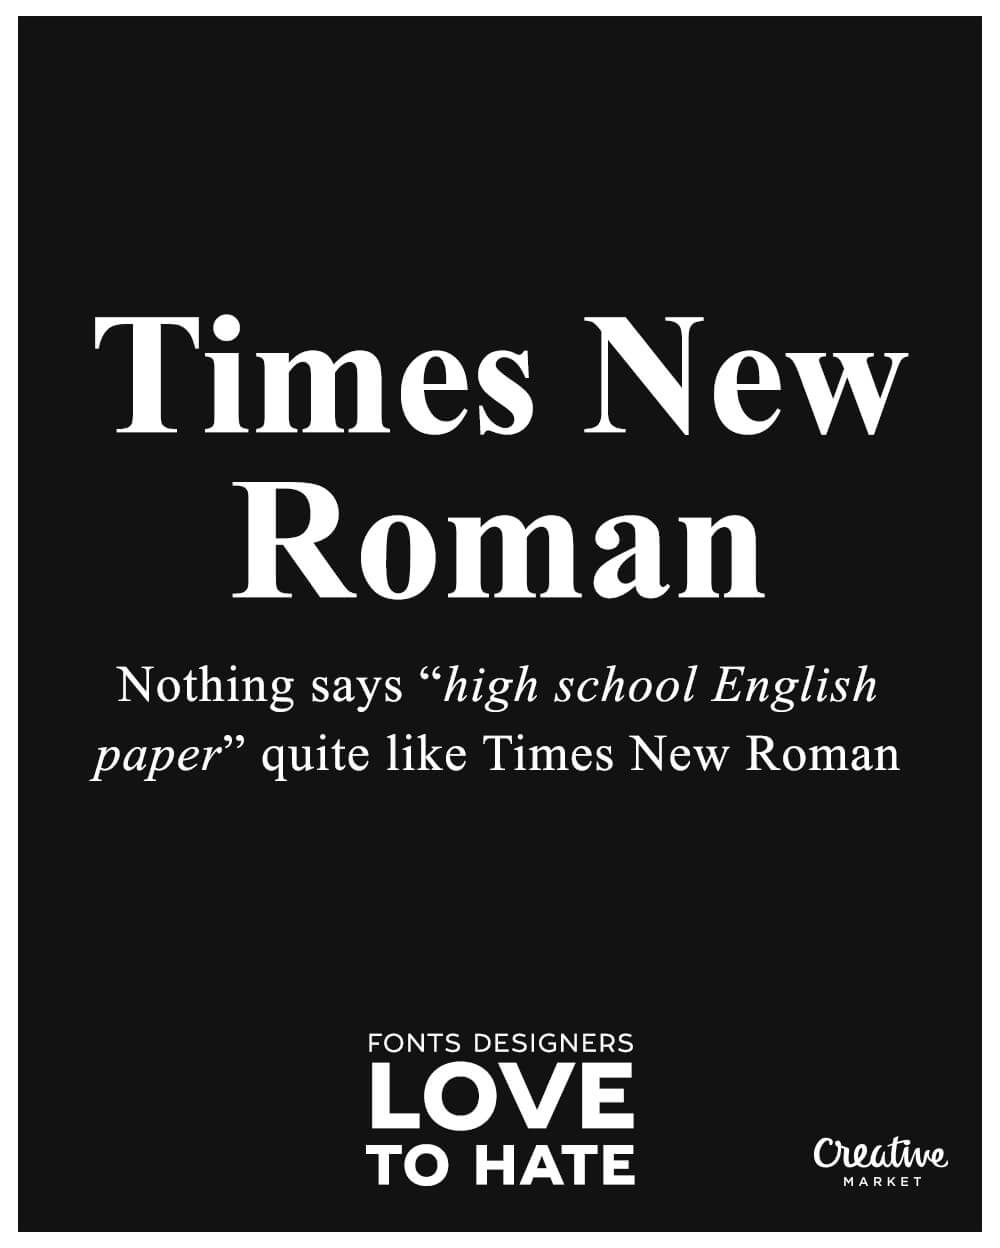 10 fonts designers love to hate: Times New Roman